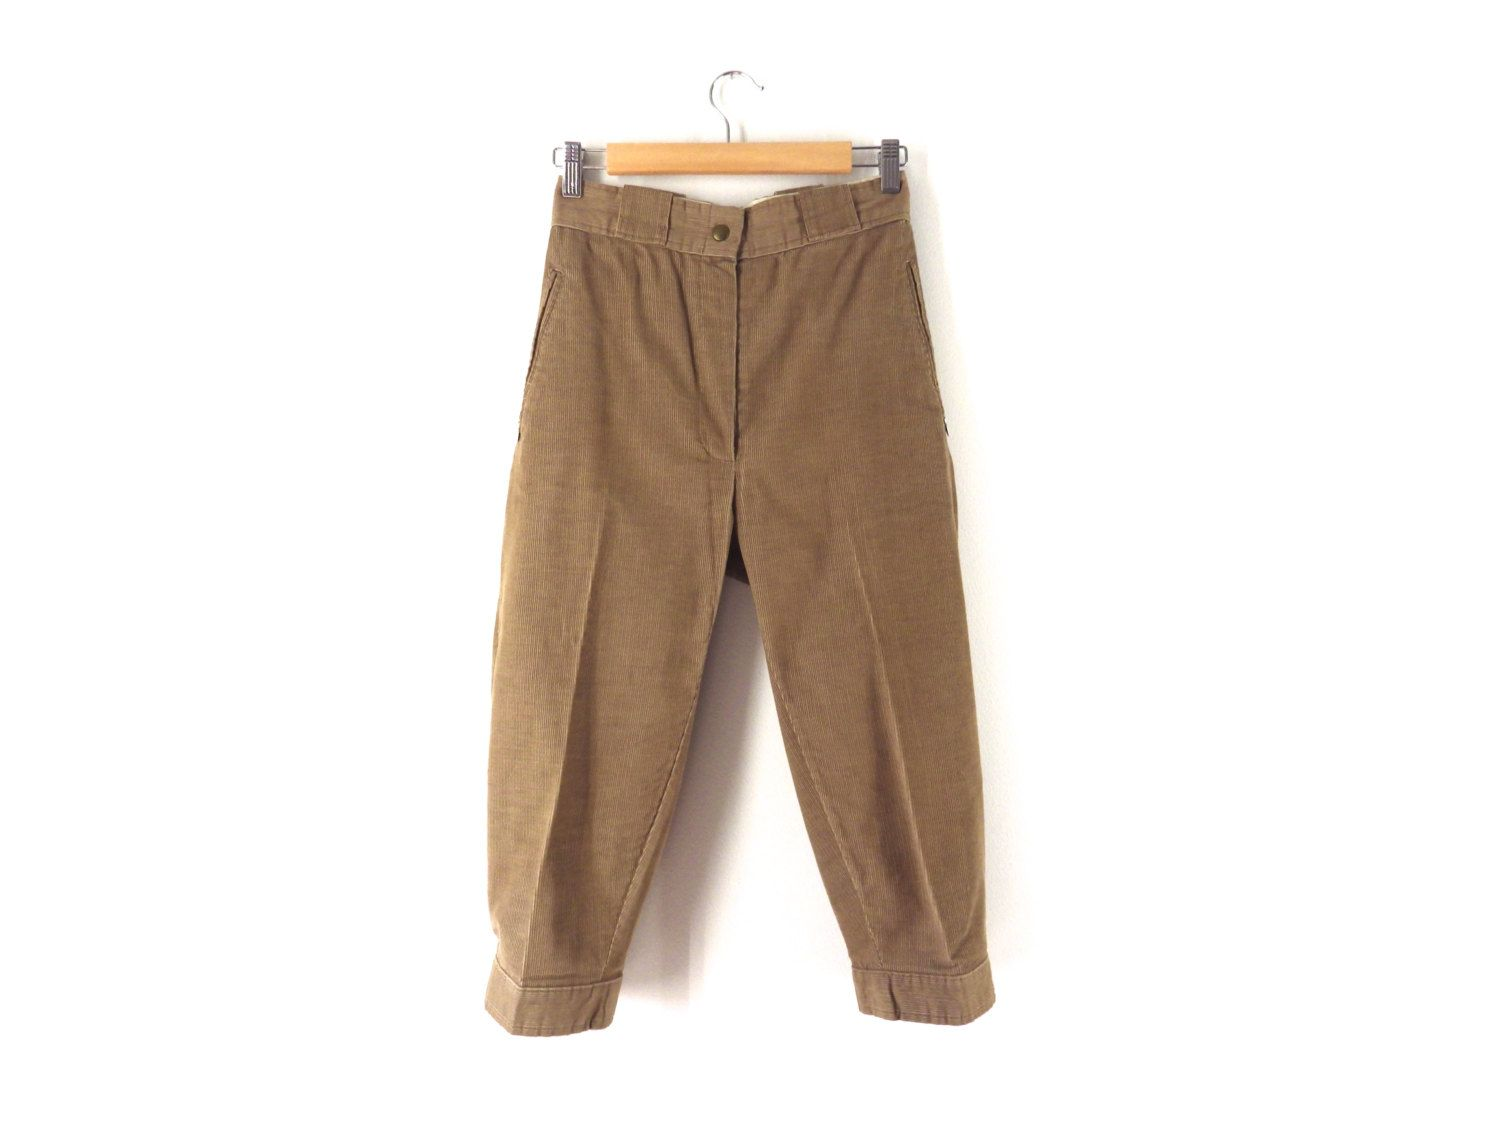 3c112193 Vintage 80s Sunbuster Knickers - Tan, Light Brown Corduroy Plus Fours,  Trousers - Hiking Golf Riding - 26 W XS Small 2 Women Men Children by  Iterations on ...